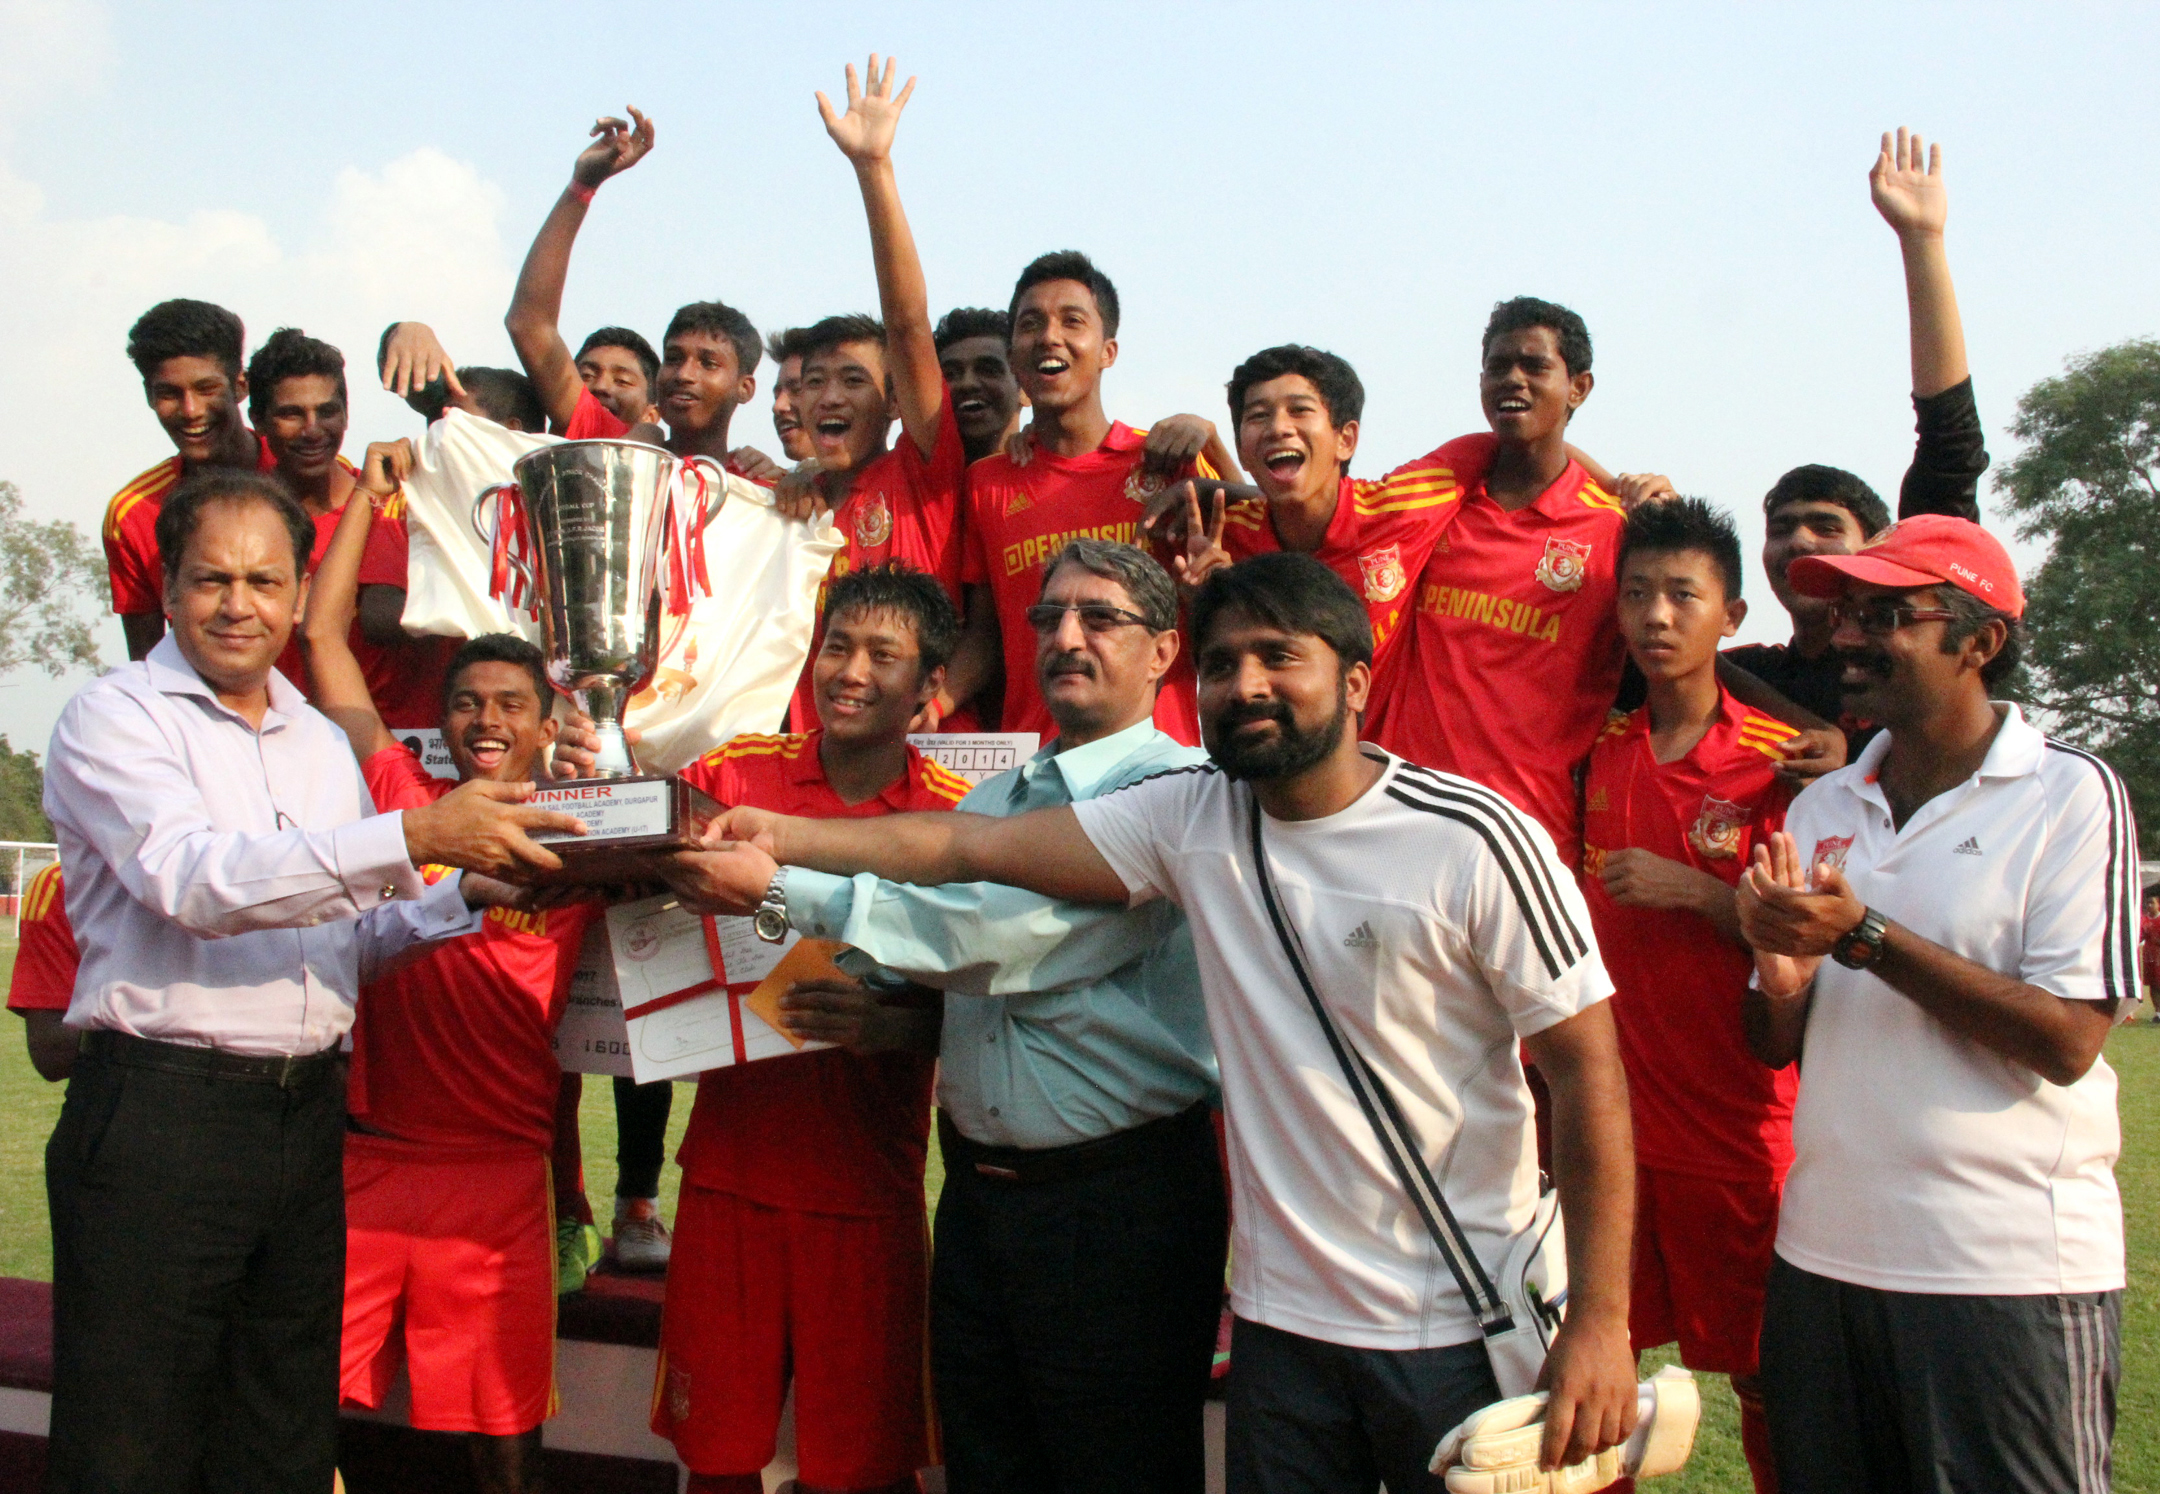 Mr. Rajender P Upadhyay,IGP, UT,  Chandigarh giving away winner�s trophy to the team of Pune Football Club at the closing ceremony of 12th Administrator�s Challenge Cup (U-17 Boys) All India Football Tournament-2014 at Football Ground, Sector-17, Chandigarh on Tuesday, September 30, 2014.